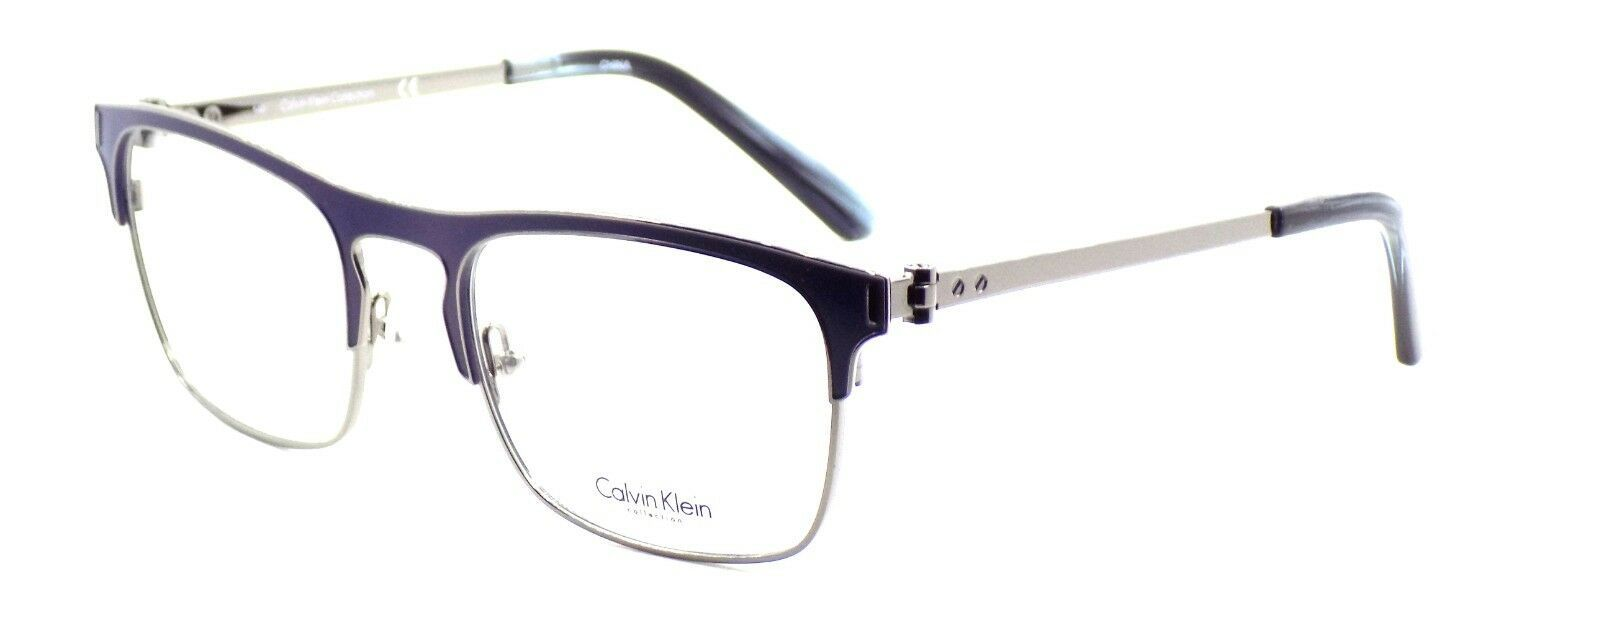 Calvin Klein CK8016 405 Men's Eyeglasses Frames Navy Blue 52-20-140 + CASE